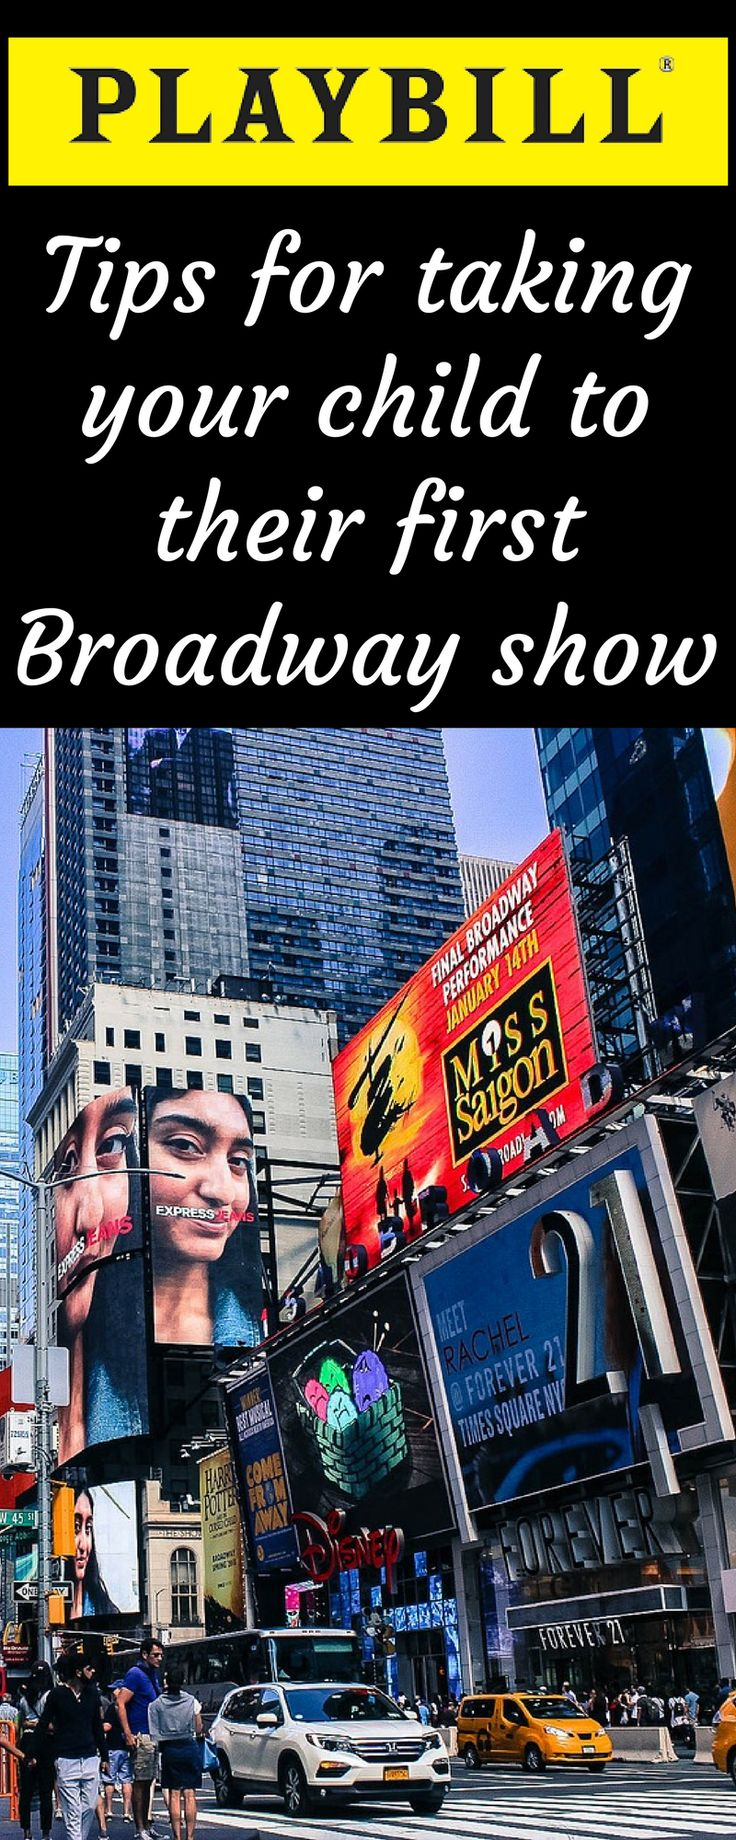 Tips for taking your child to their first Broadway show | Broadway with kids | Theater kids | Broadway | NYC | New York City | NYC with kids | New York City with kids | Travel with kids | Family travel #nyc #newyorkcity #broadway #travelwithkids #familytravel